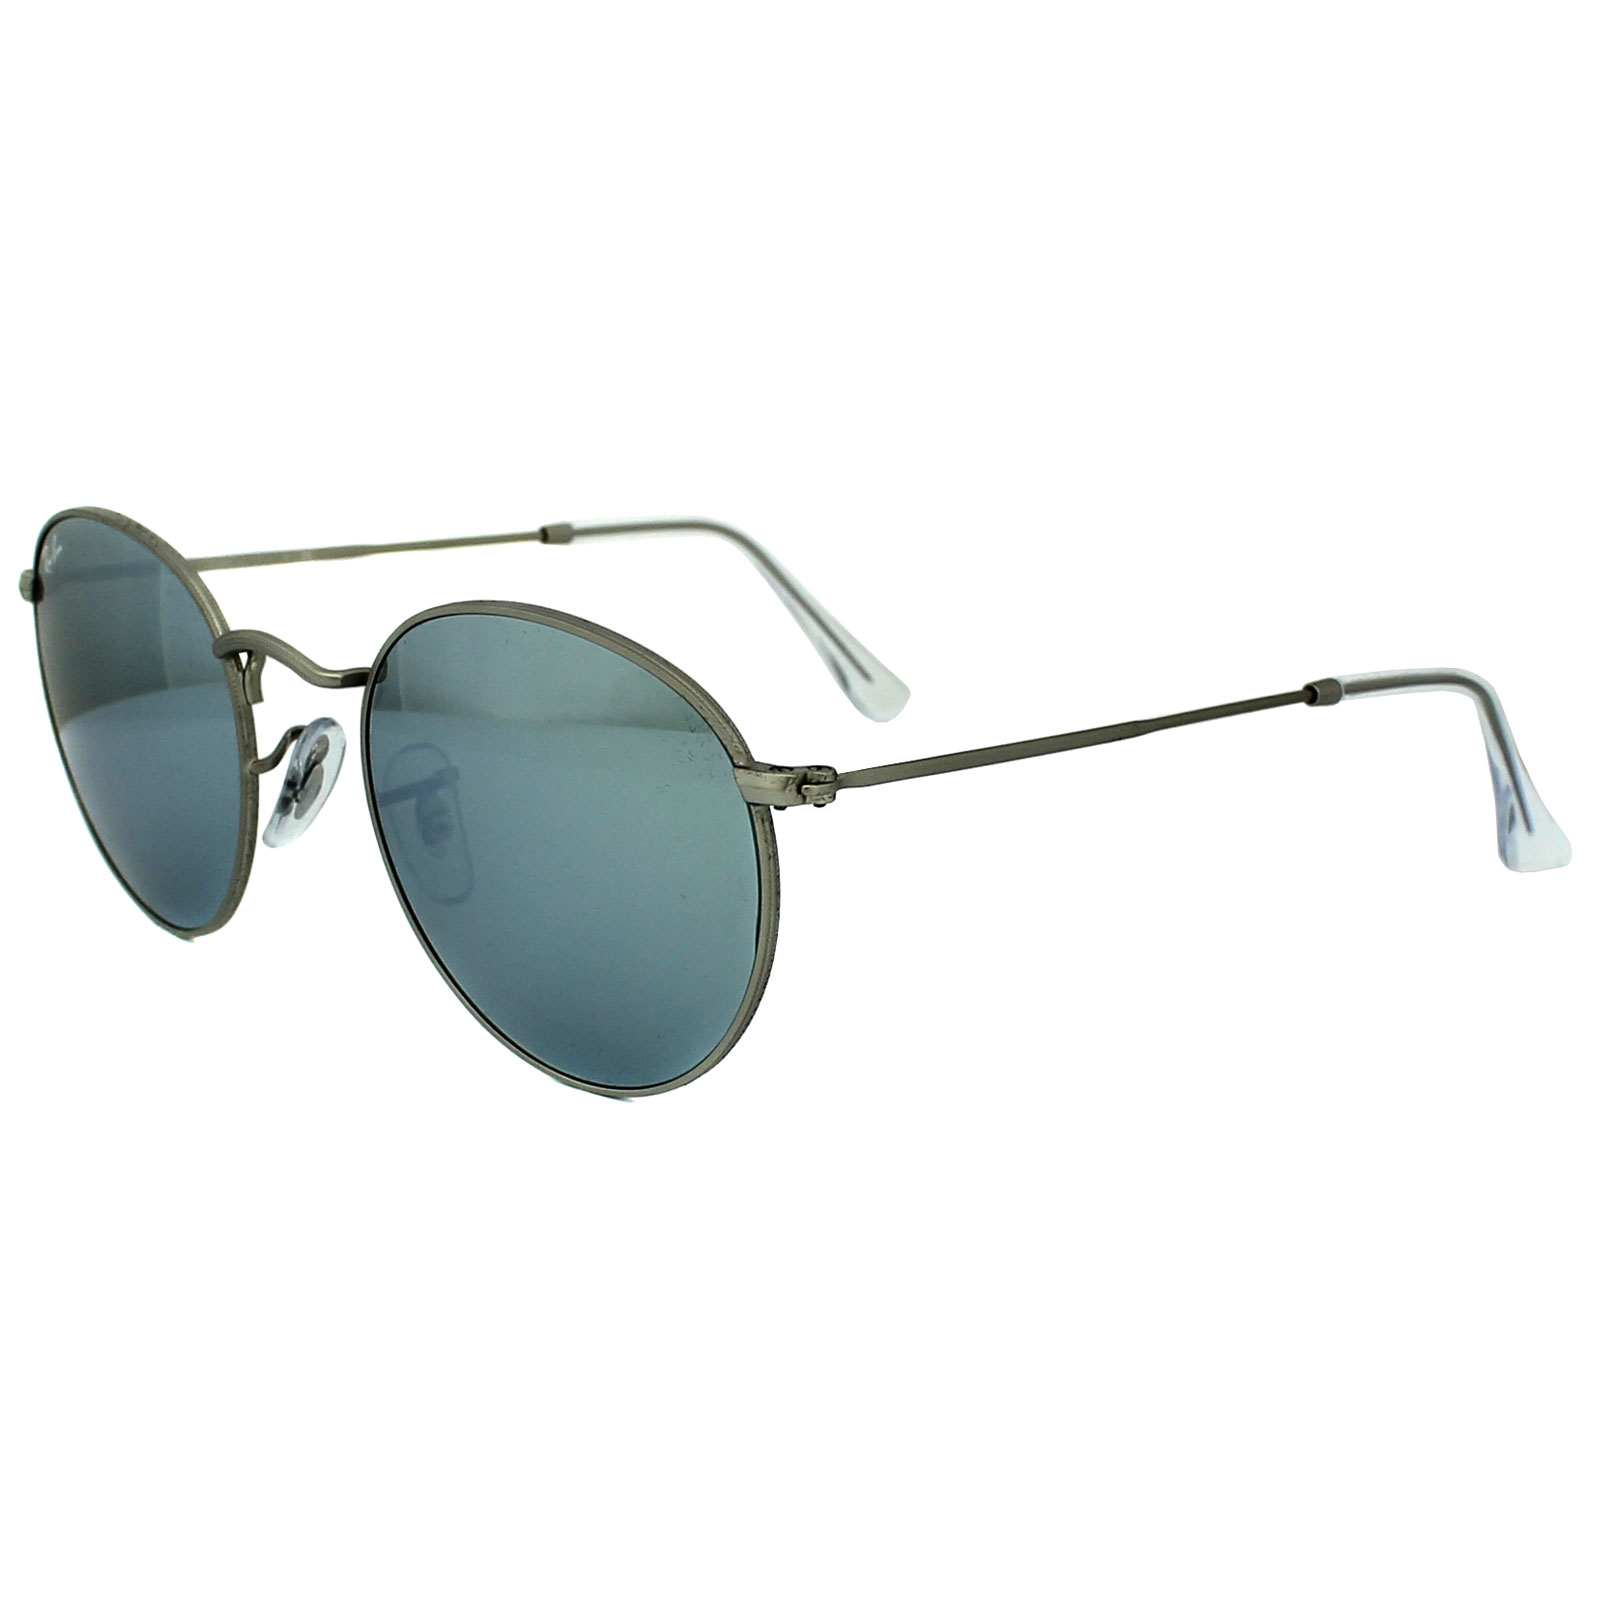 ray ban sunglasses round metal 3447 019 30 silver silver. Black Bedroom Furniture Sets. Home Design Ideas